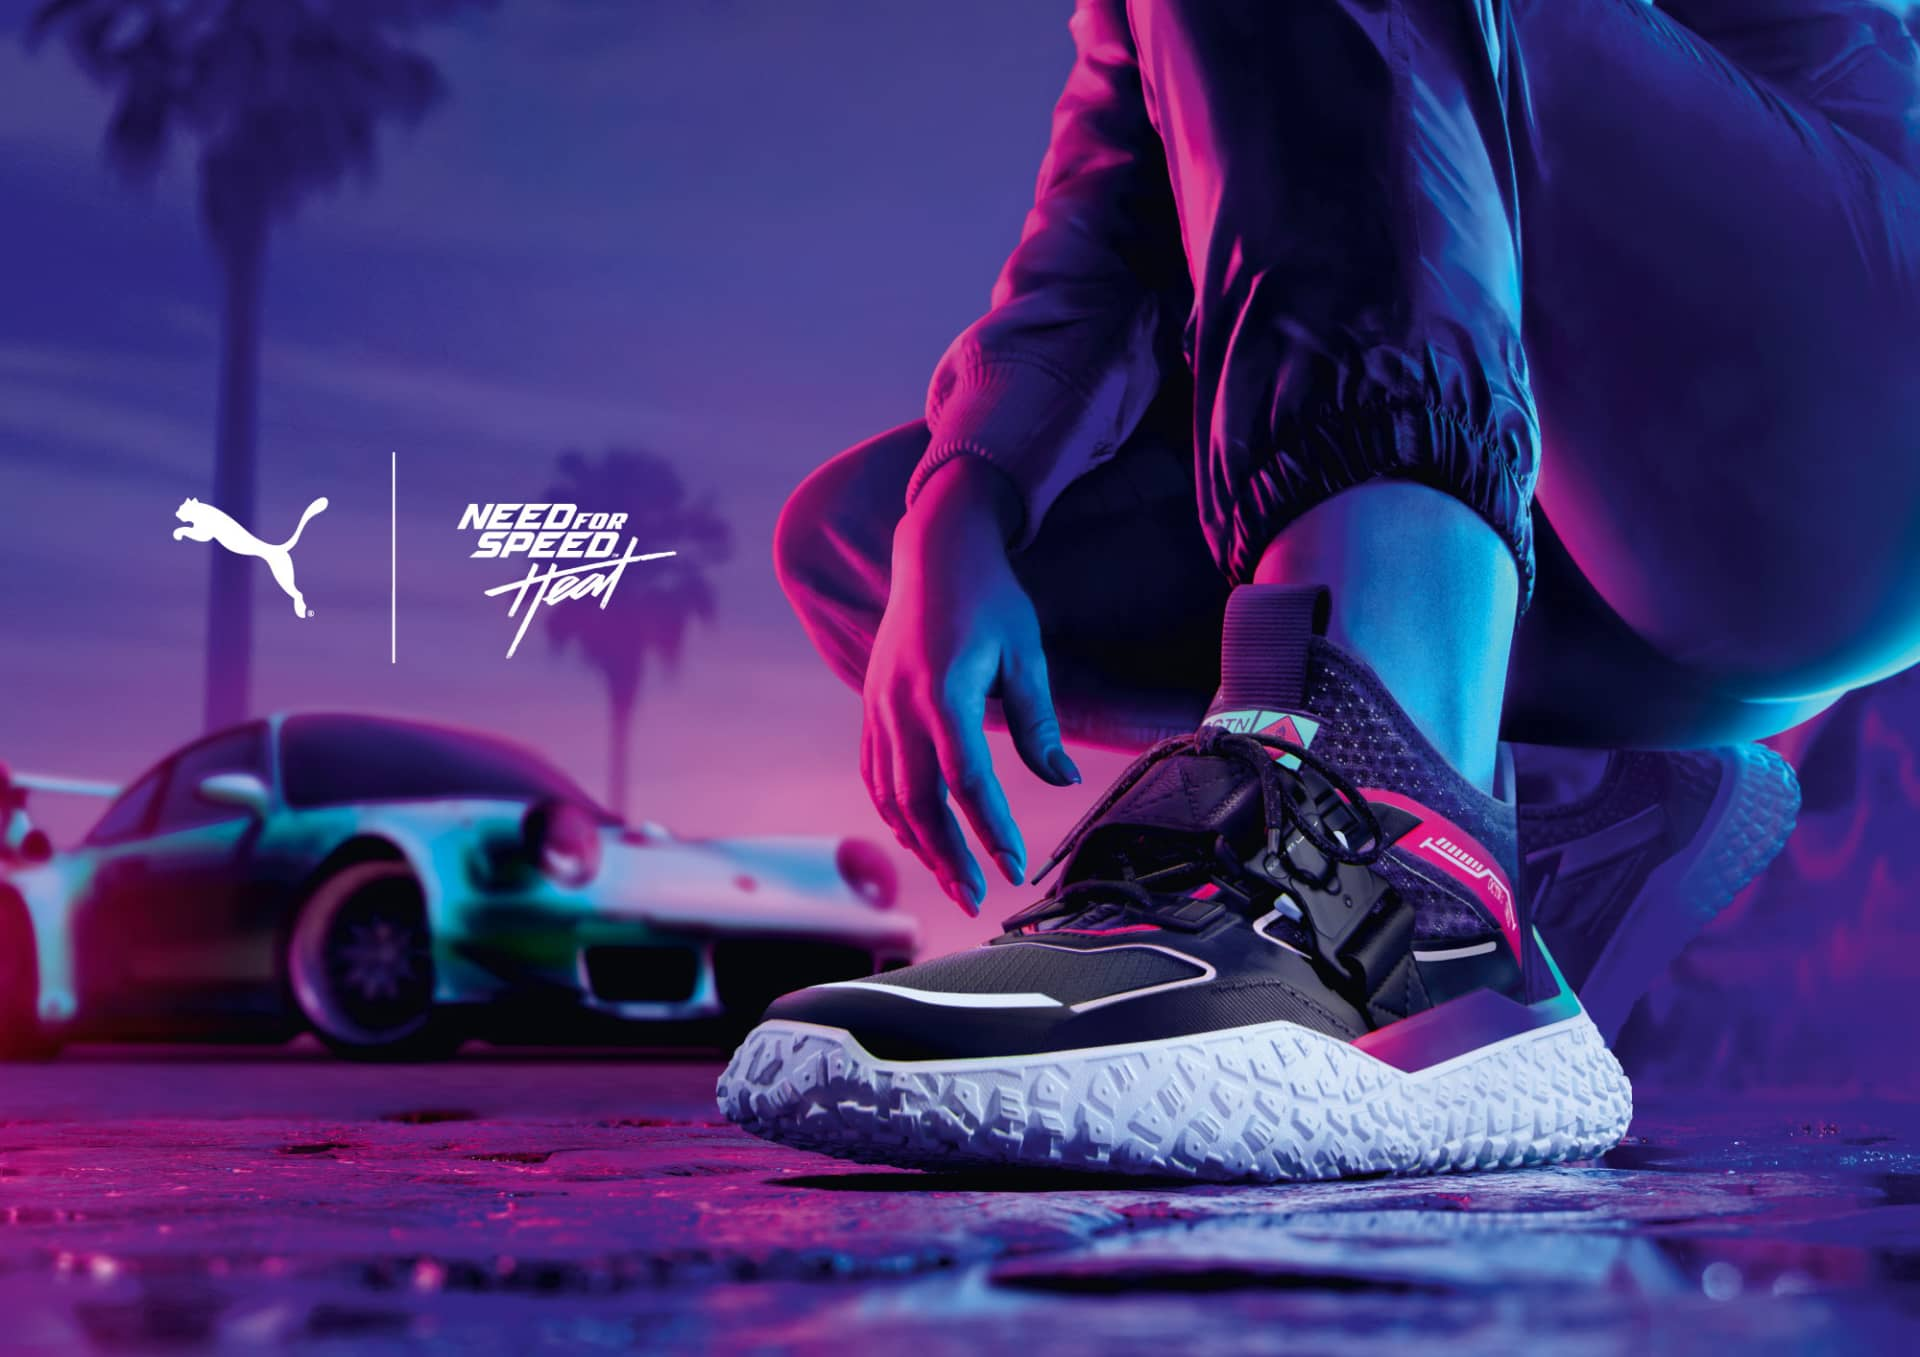 Puma and Electronic Arts partner for limited-edition Need for Speed Heat shoes 12